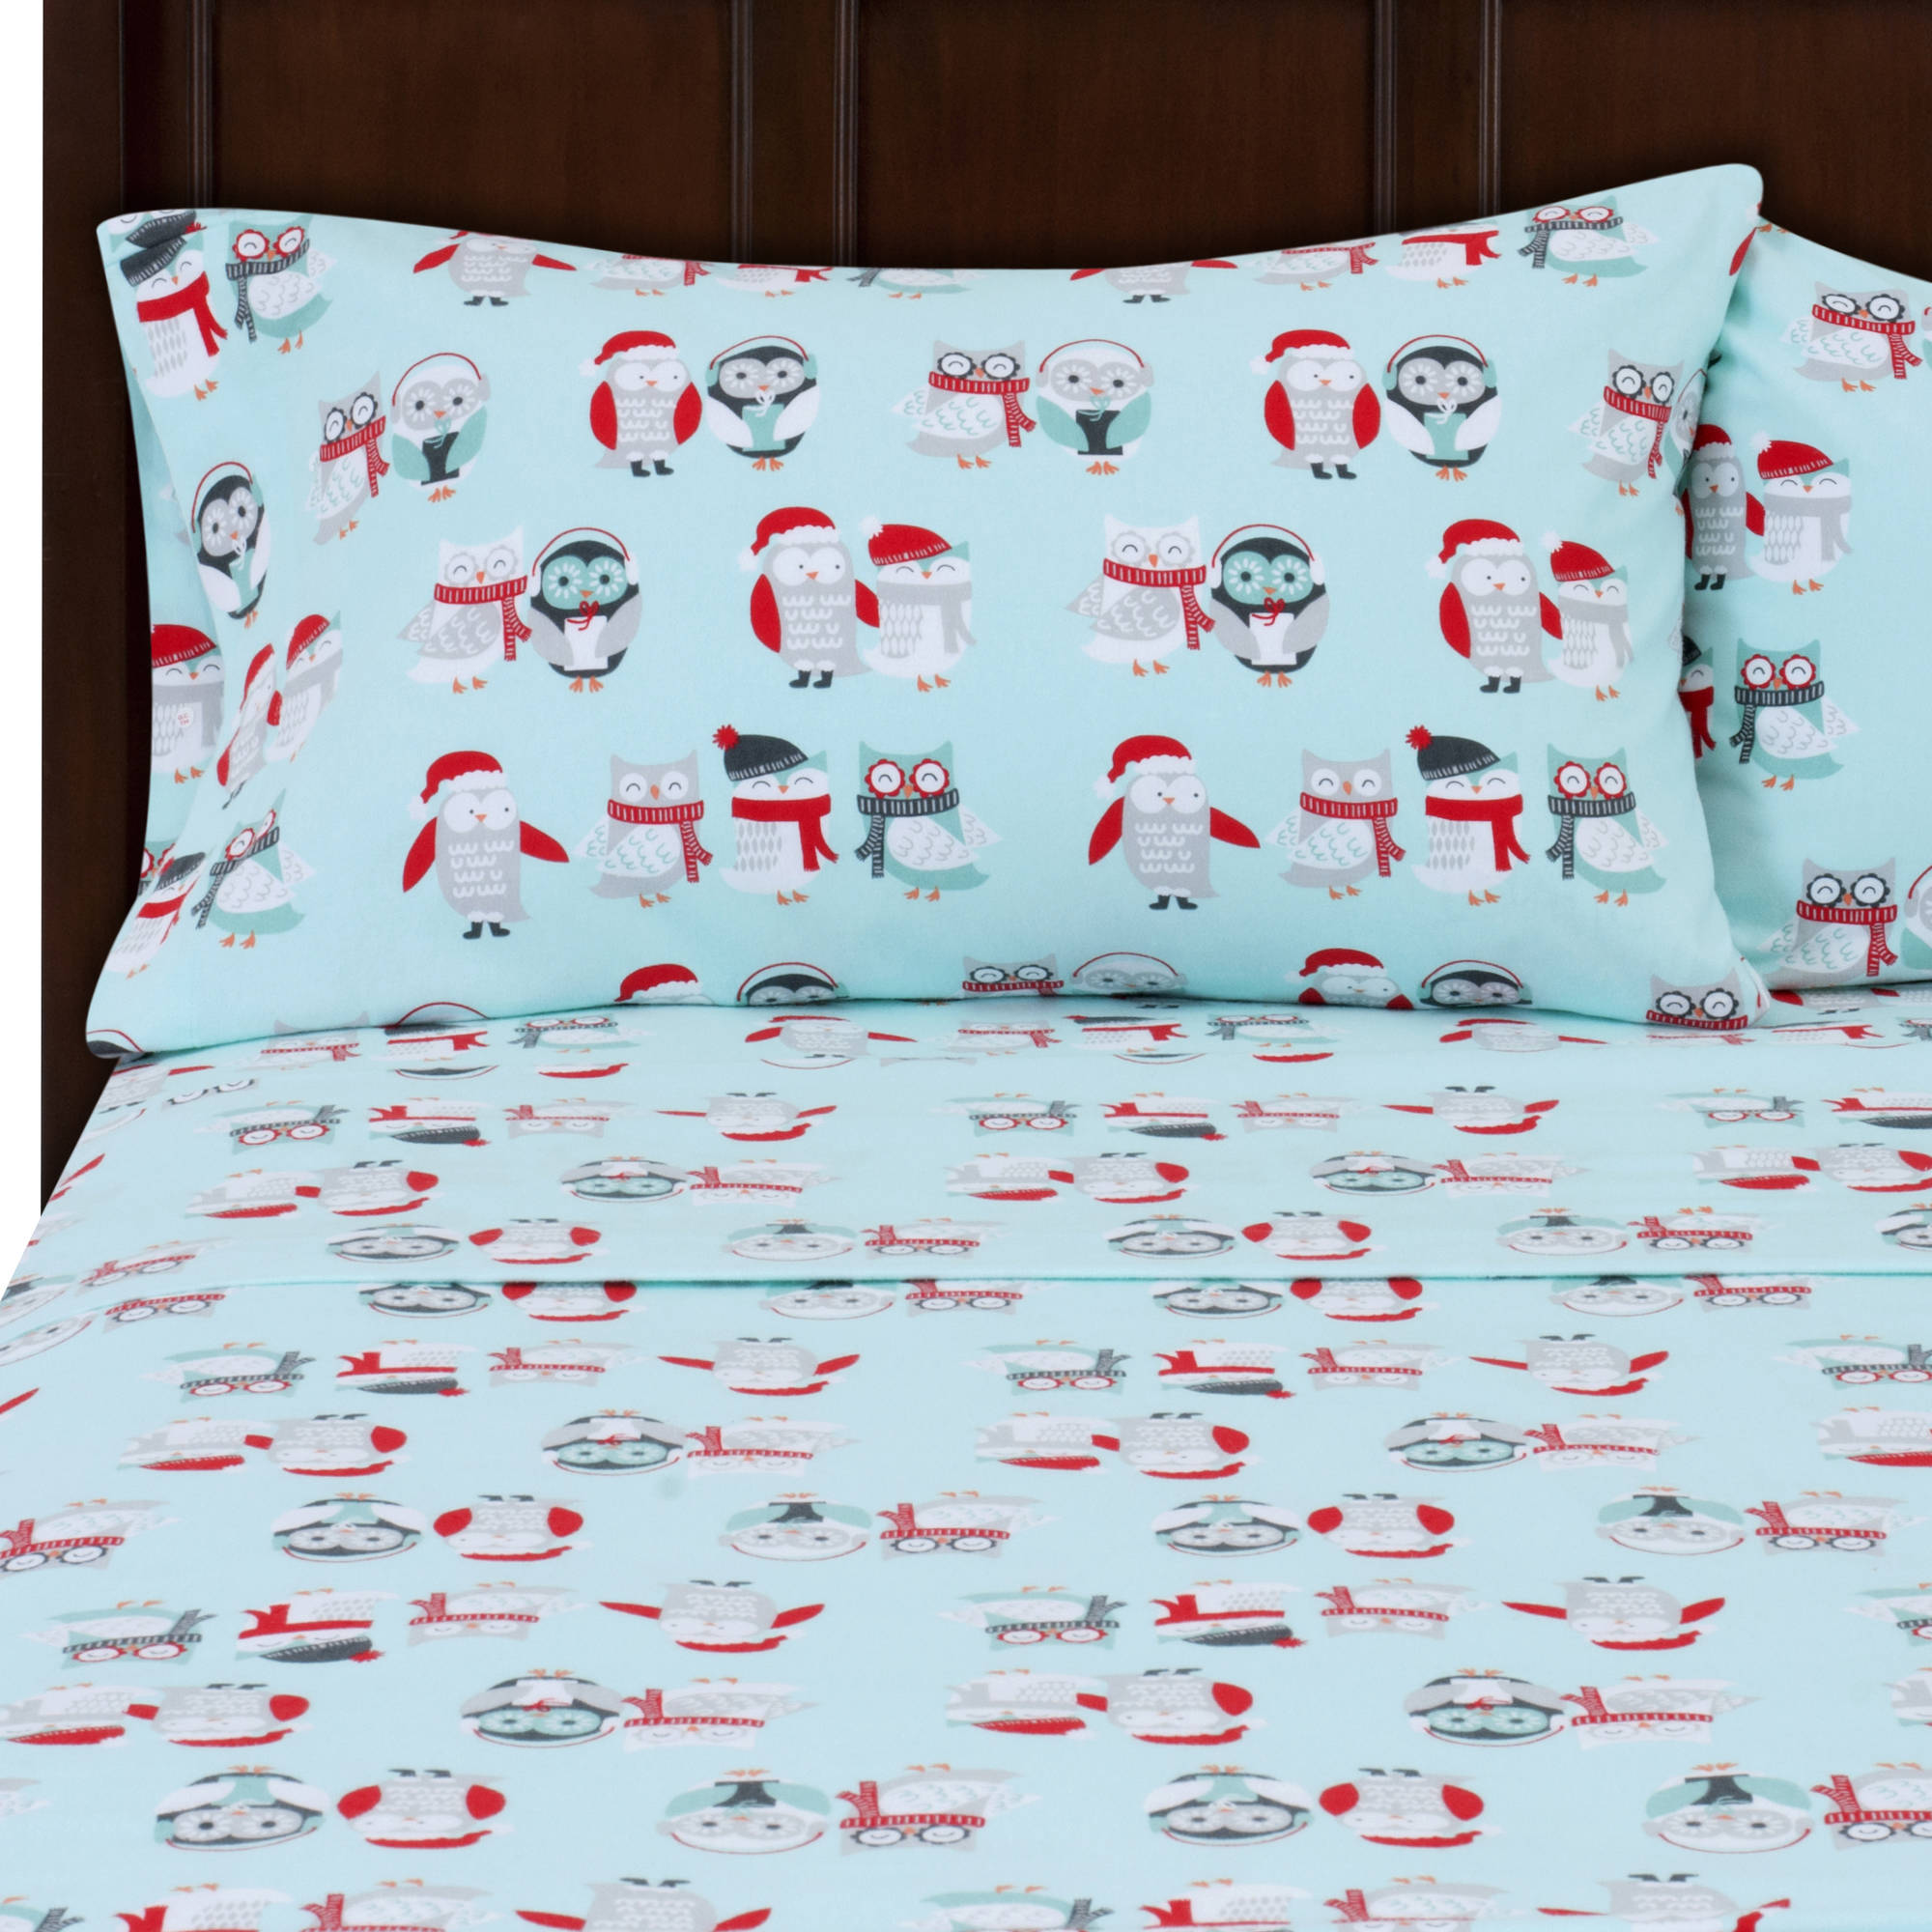 Mainstays Flannel Bedding Sheet Set   Walmart.com